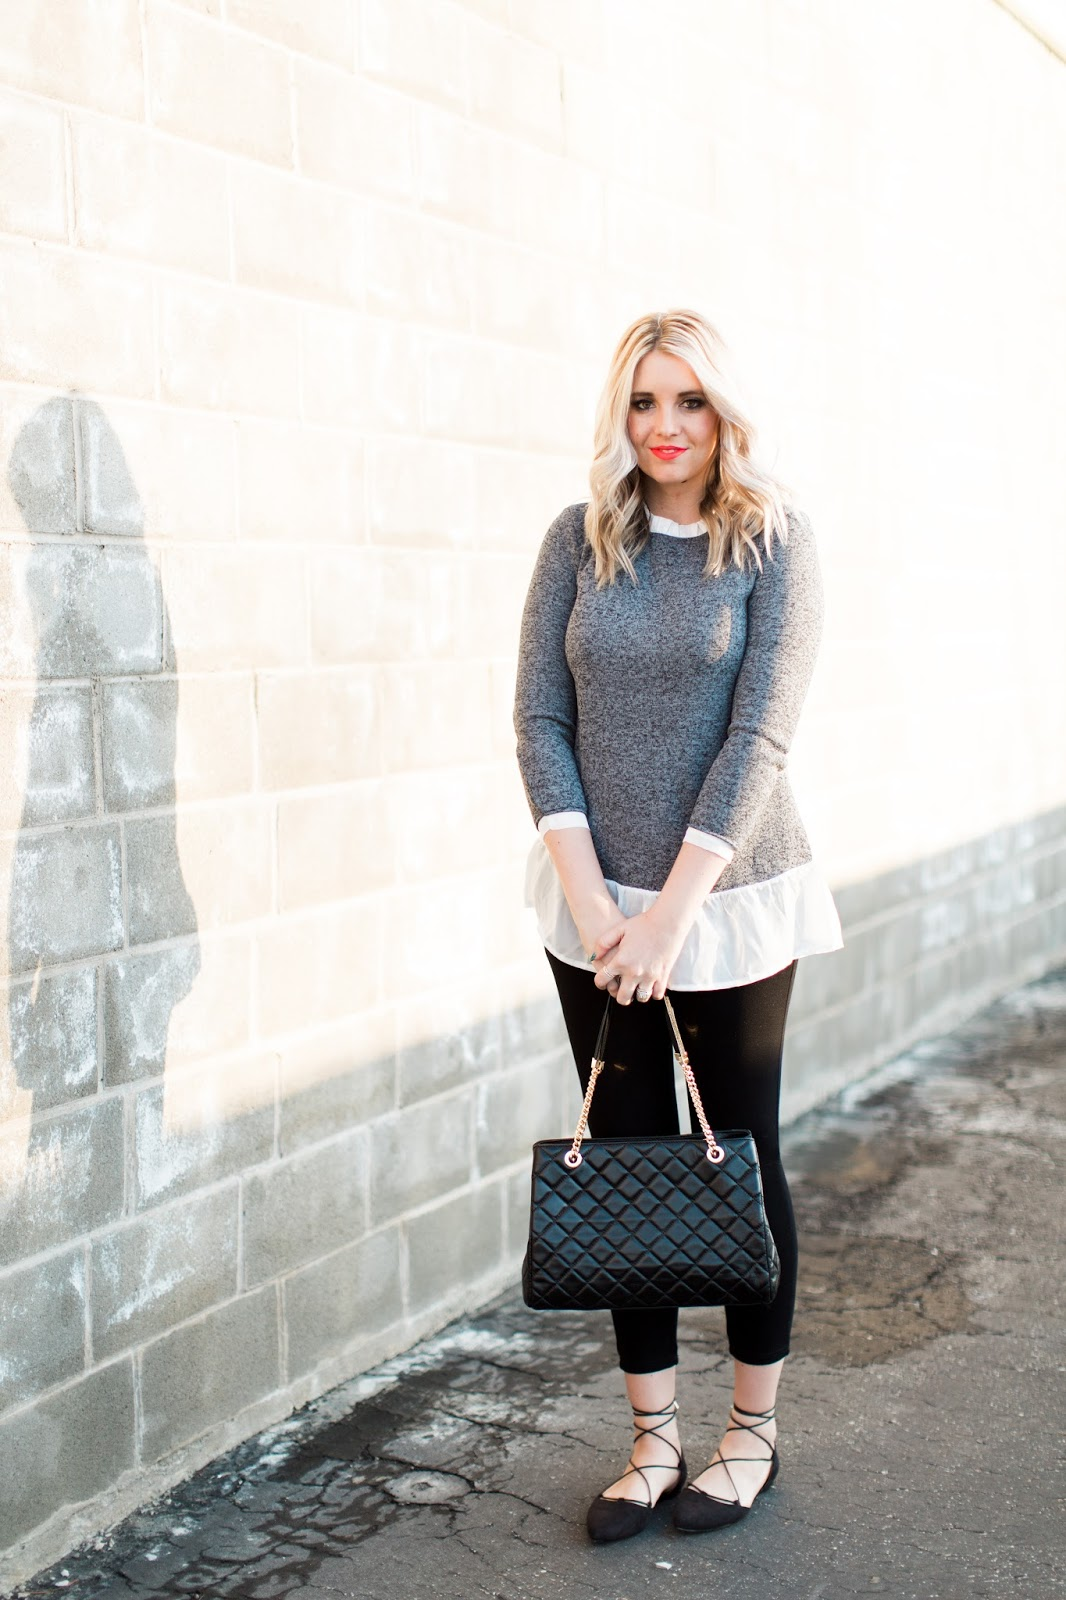 Michael Kors Purse, Utah Fashion Blogger, Choies